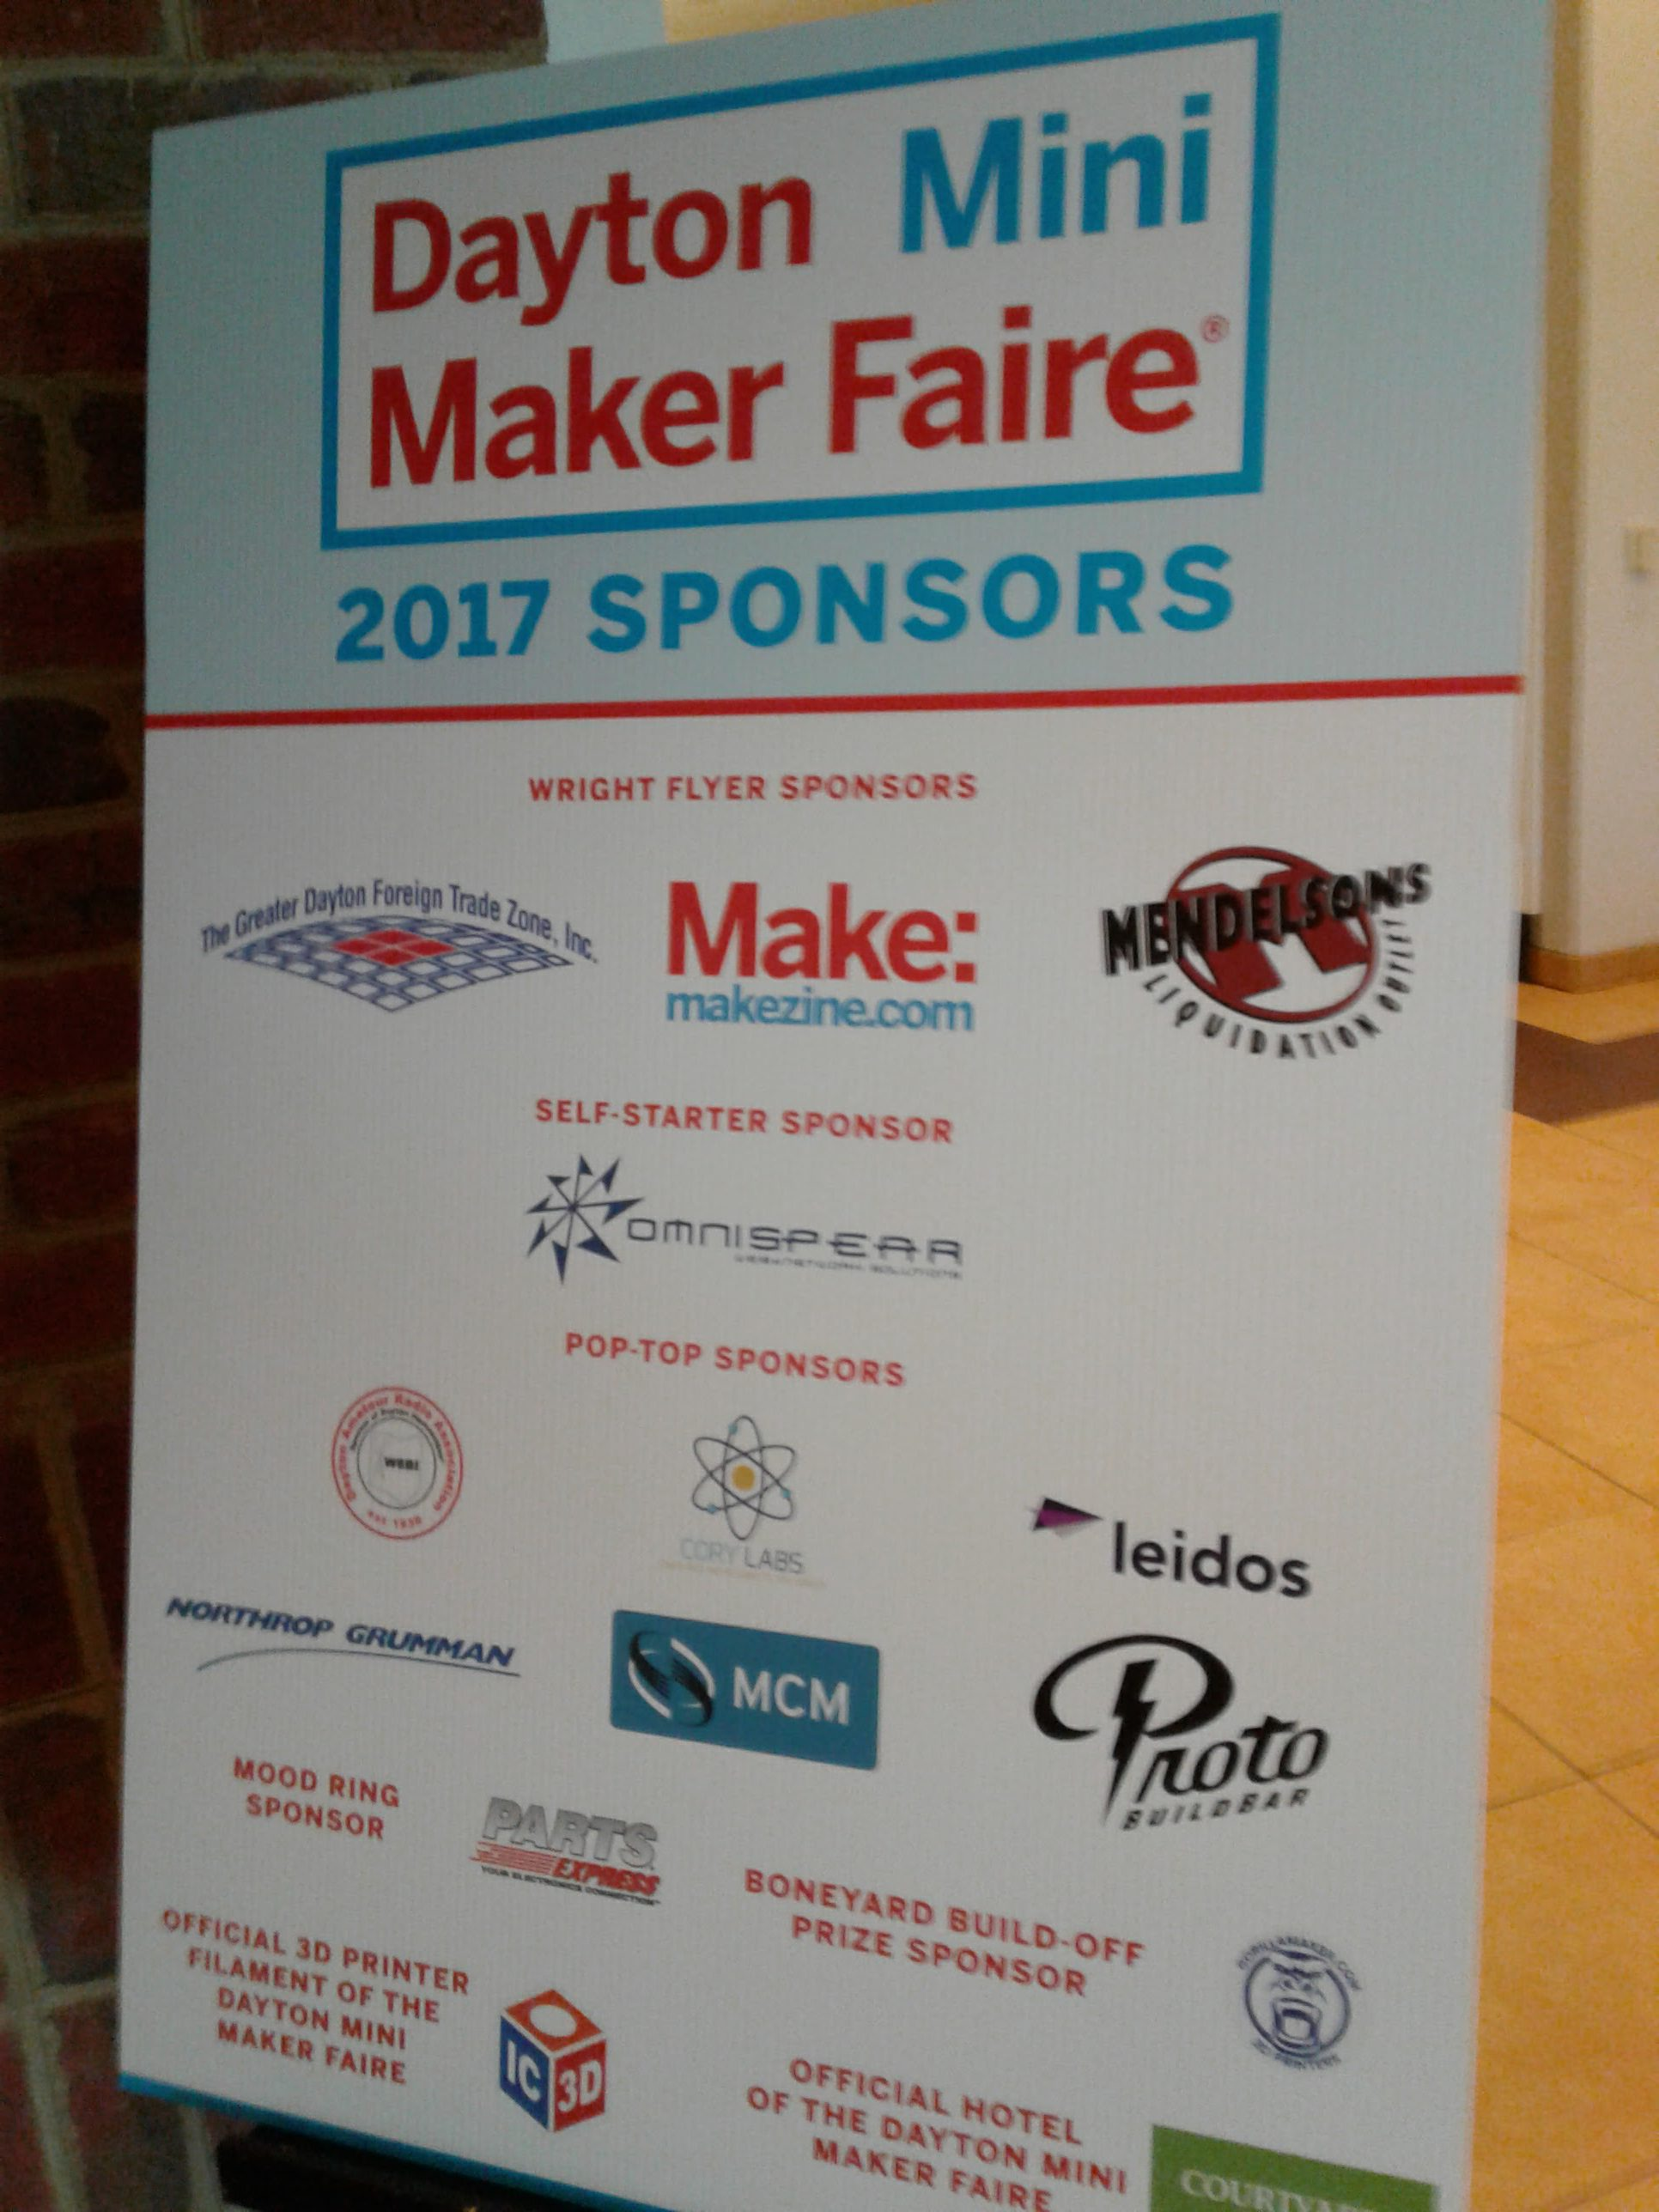 i hope you enjoyed this post and hopefully we got to meet at the maker faire the next one up on my schedule is cincinnati in october of 2017